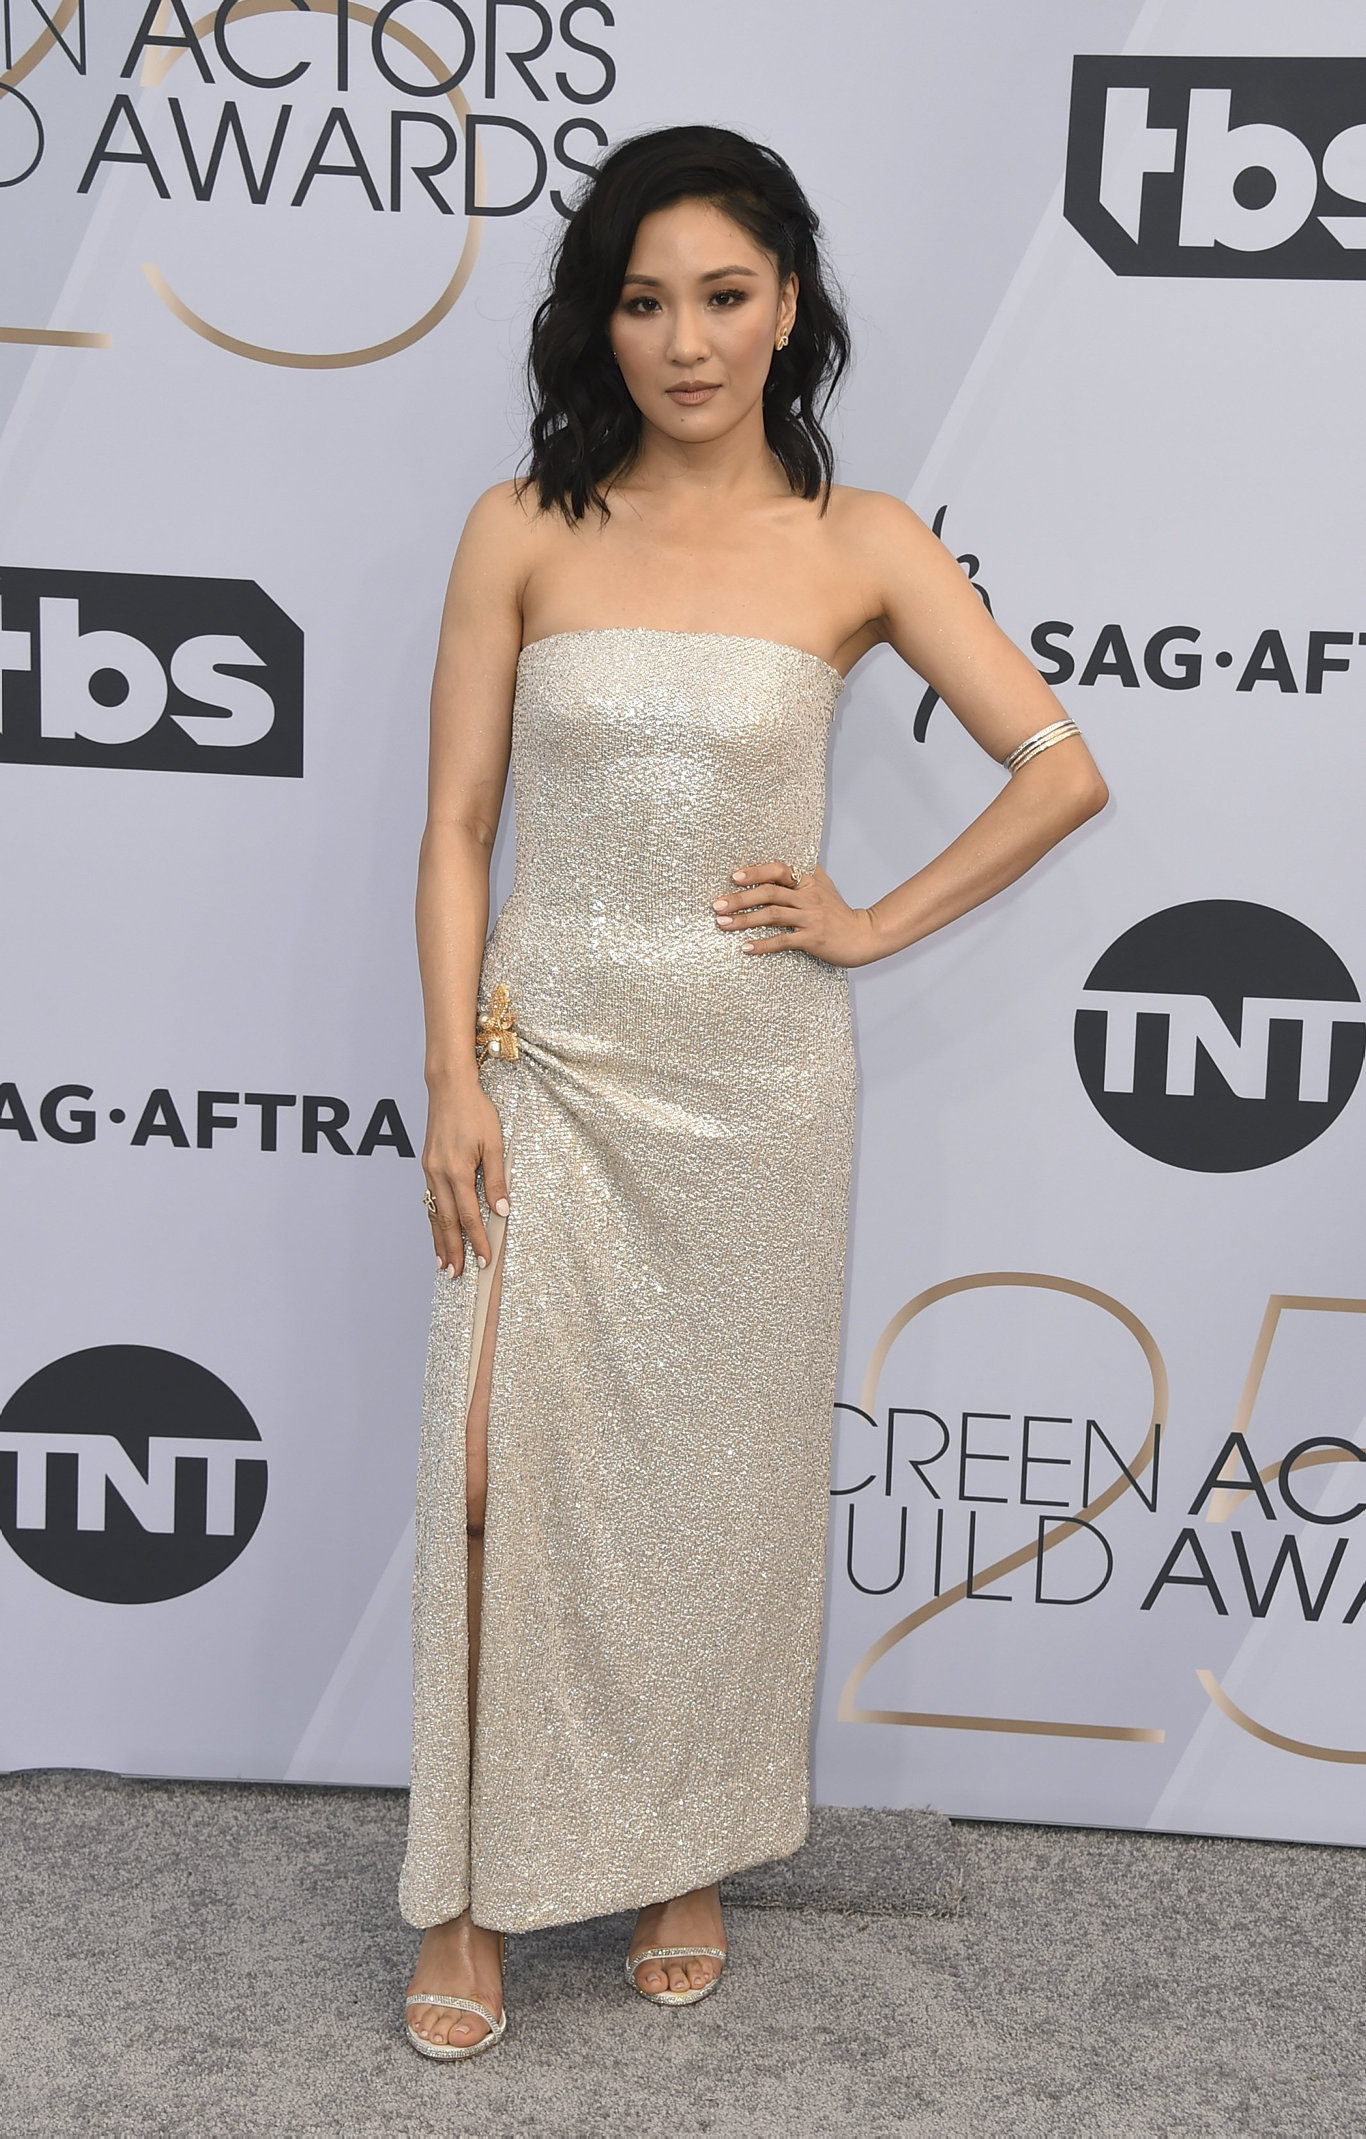 Constance Wu arrives at the 25th annual Screen Actors Guild Awards at the Shrine Auditorium & Expo Hall on Sunday, Jan. 27, 2019, in Los Angeles.